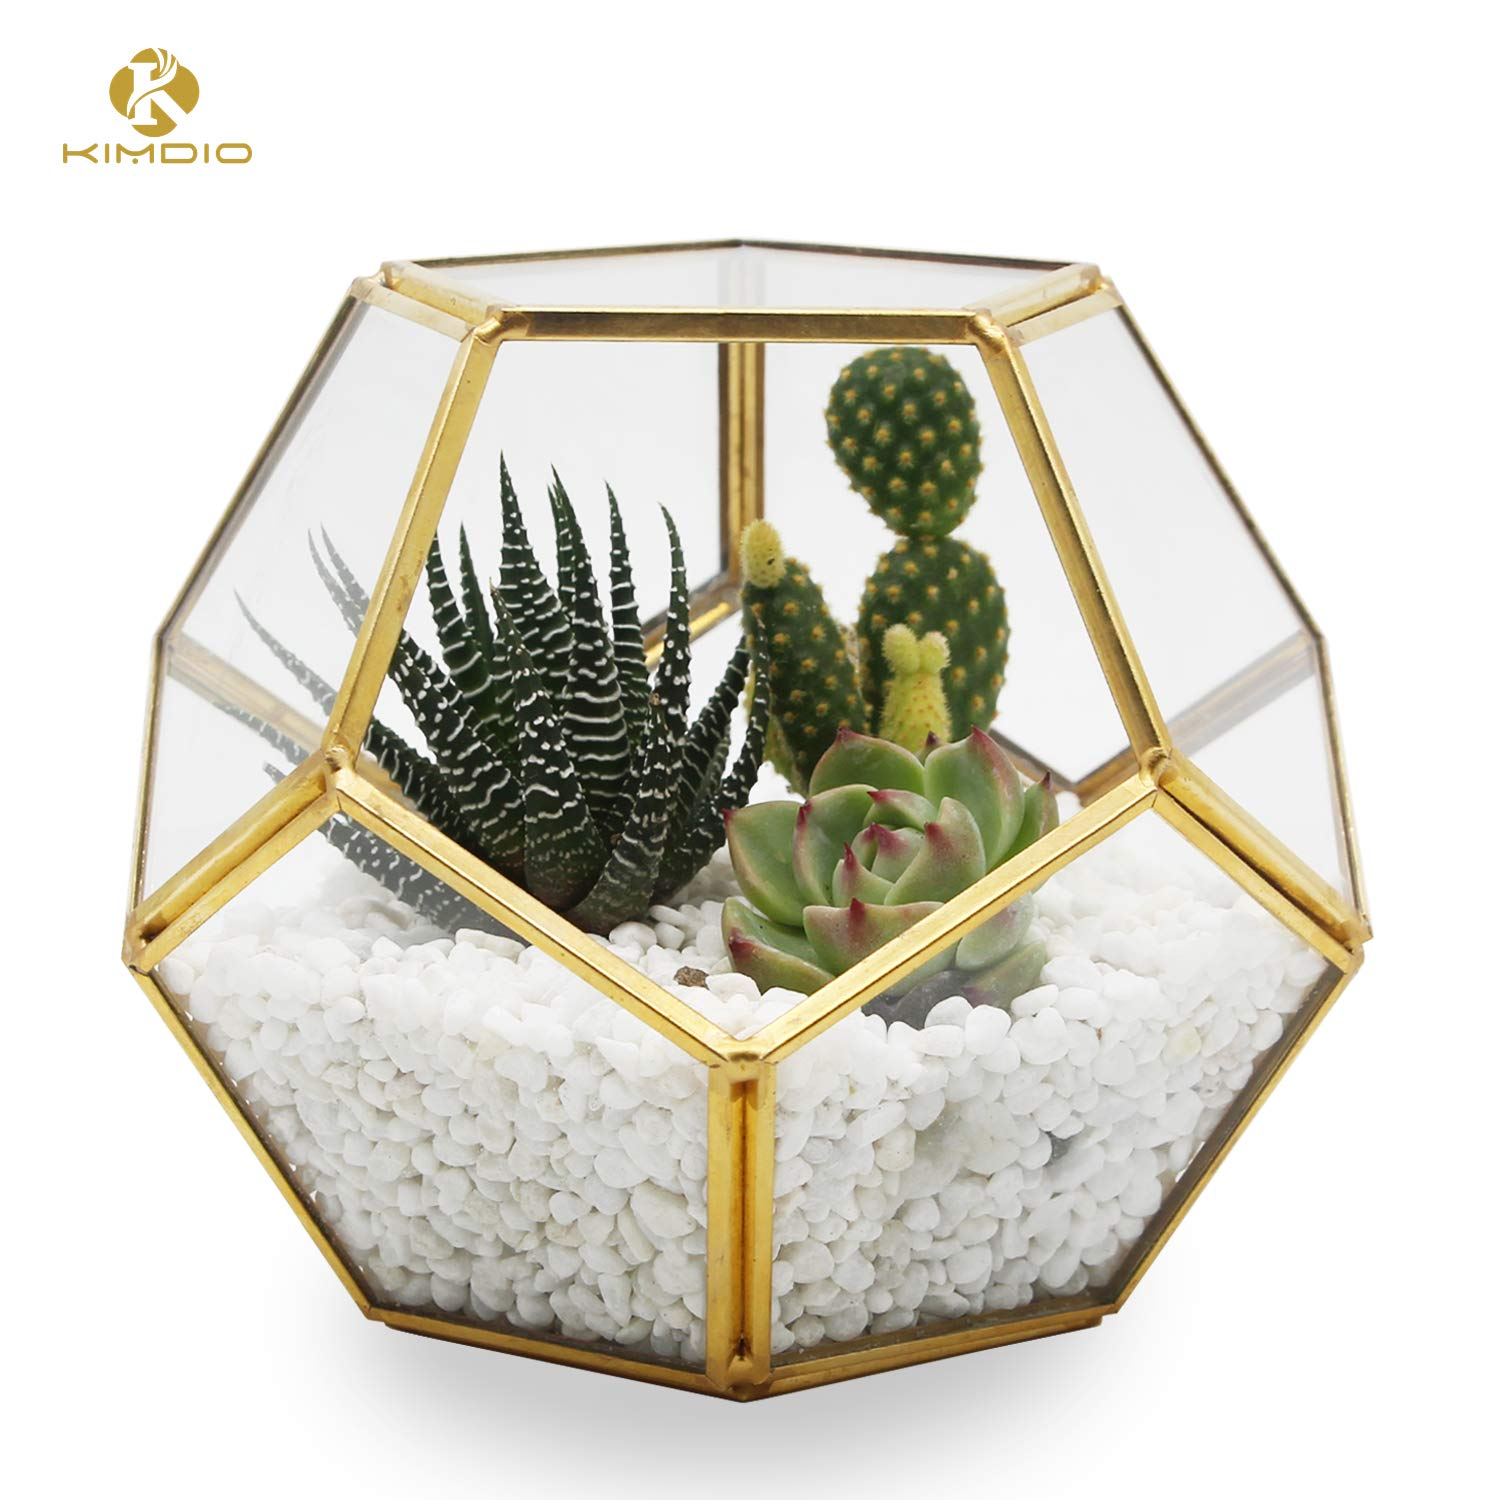 Kimdio Geometric Terrarium Ball Modern Plant Holder Display Box Indoor Opening Polyhedron Tabletop Window Sill Balcony Decorative Succulent Moss Flower Pot Containers DIY Gold